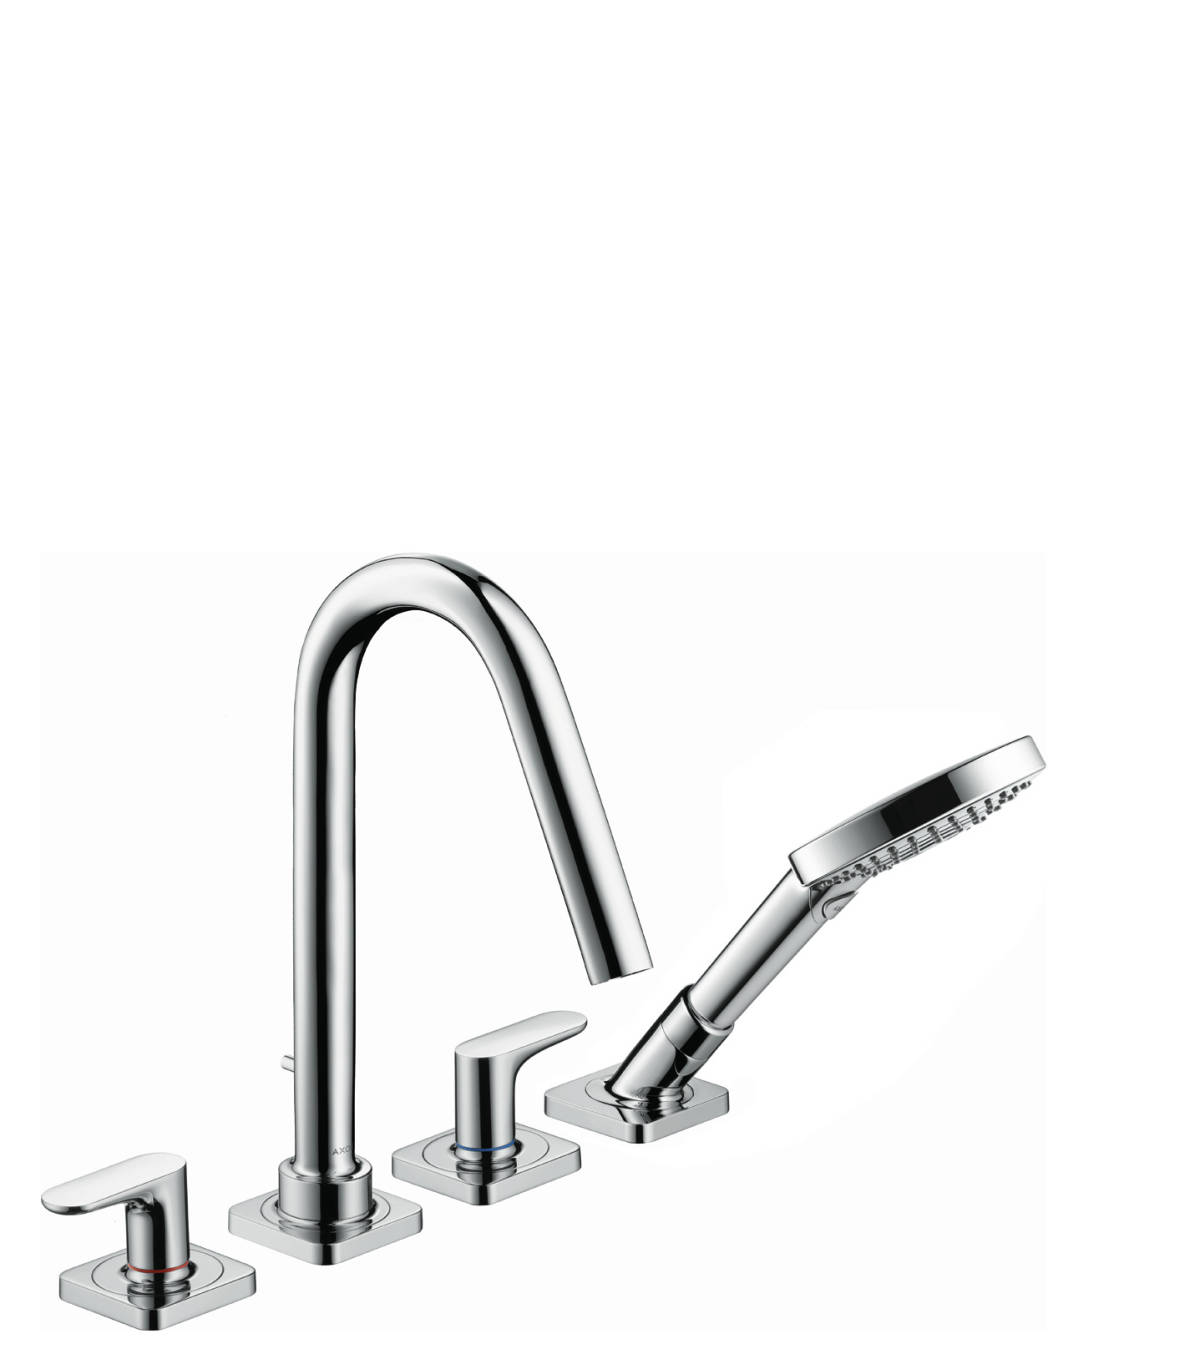 4-hole tile mounted bath mixer with lever handles and escutcheons, Brushed Black Chrome, 34454340